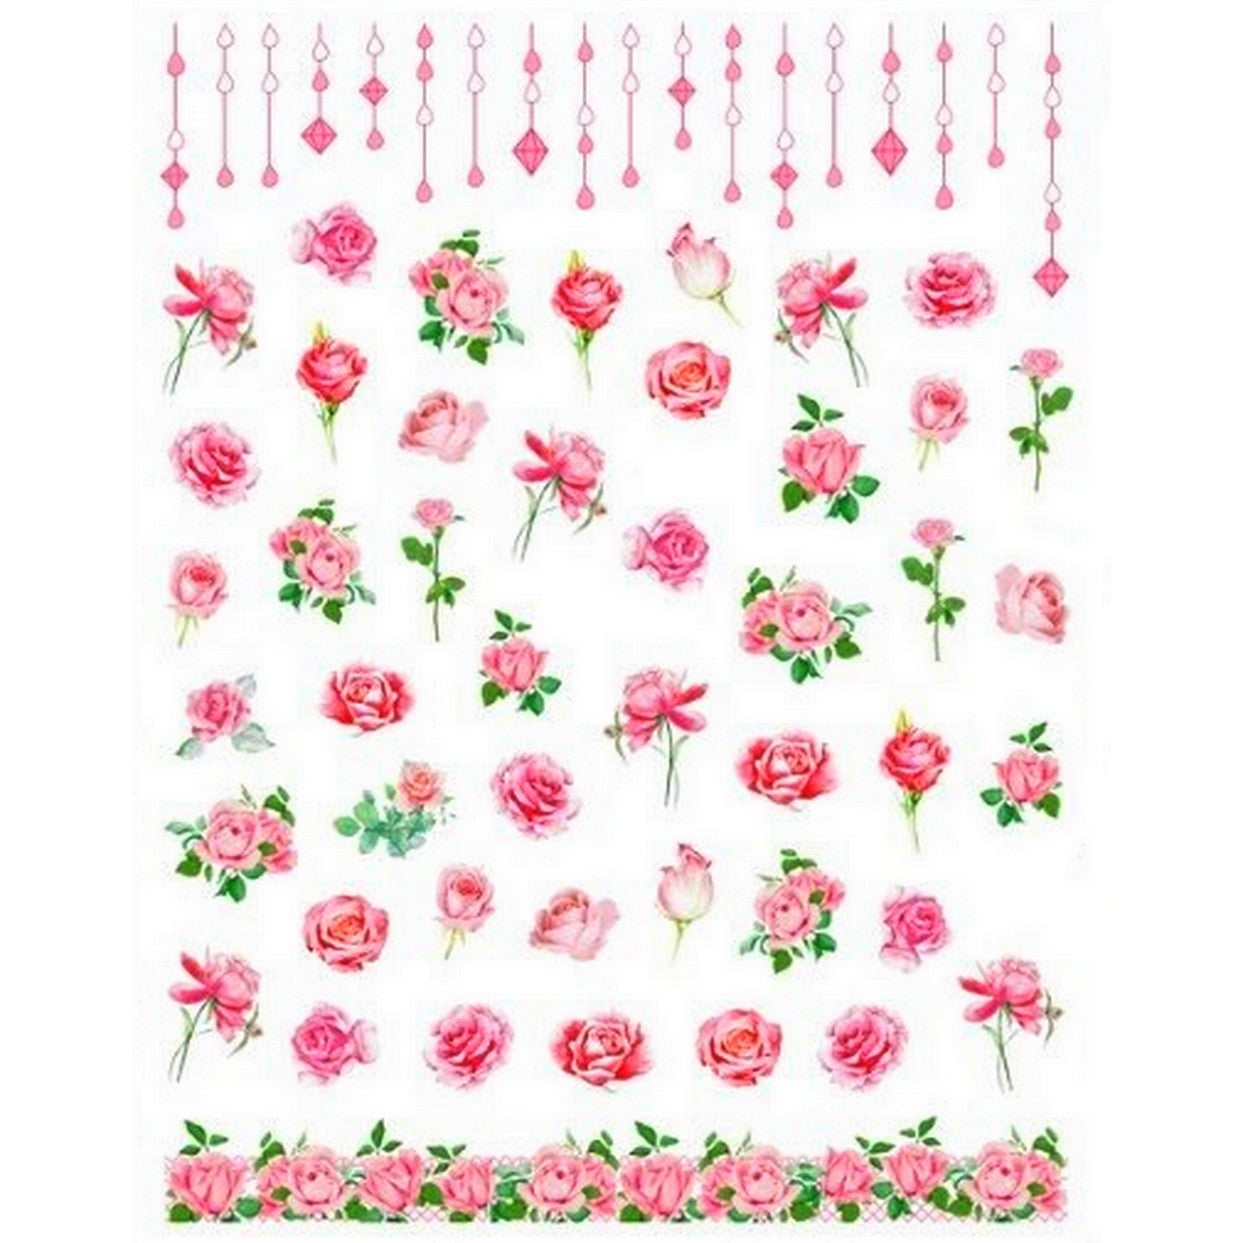 Floral Romantic Pink Roses Nail Stickers